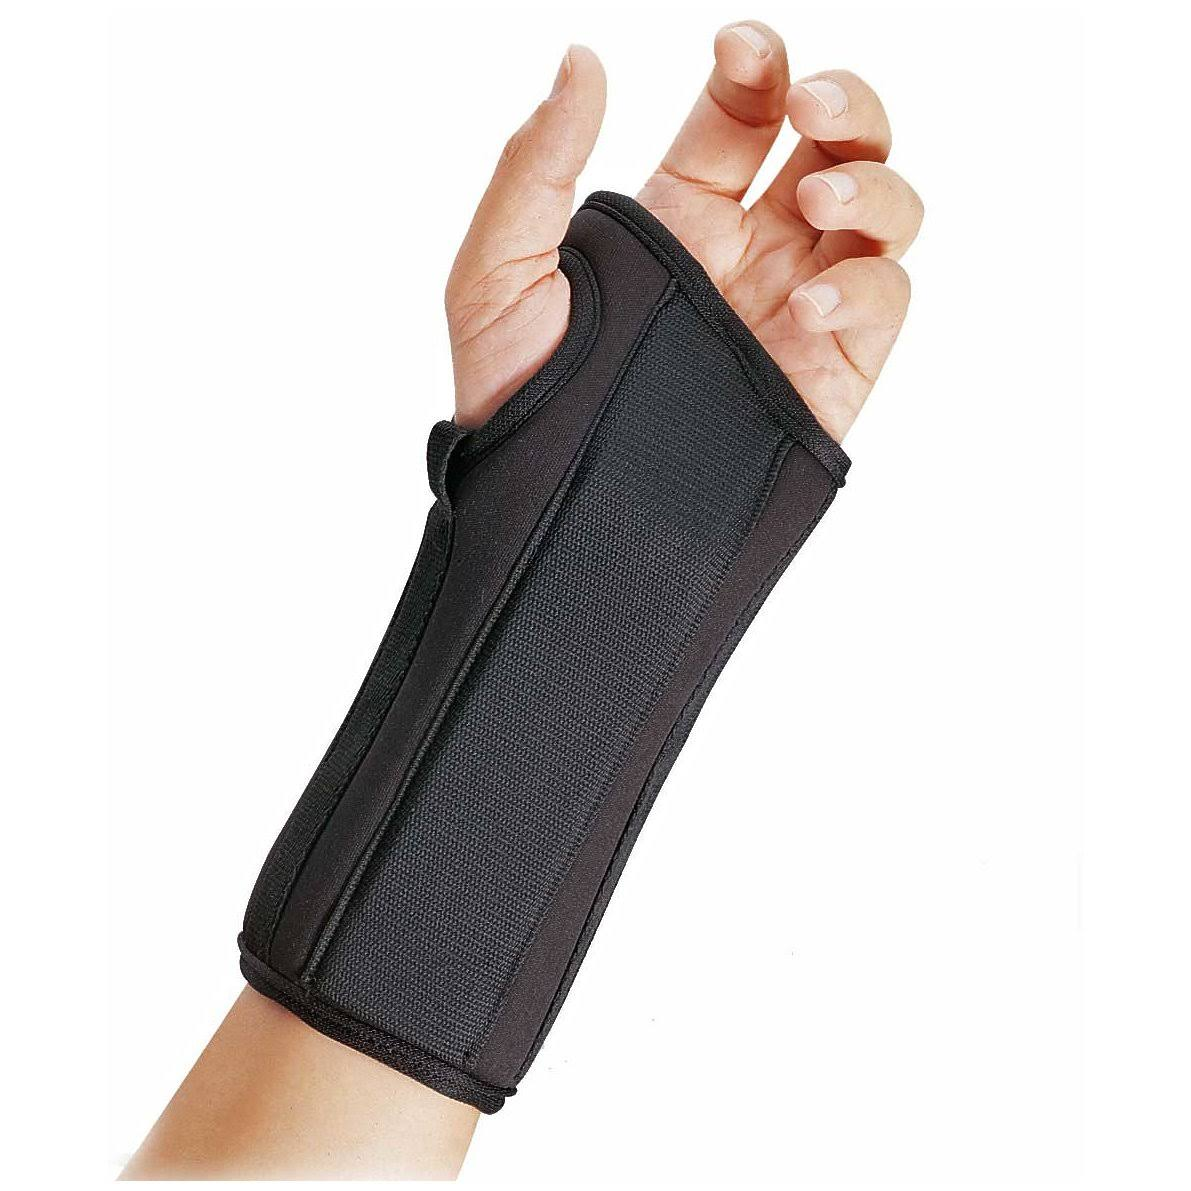 FLA Professional Wrist Splint - 8in, Large Left